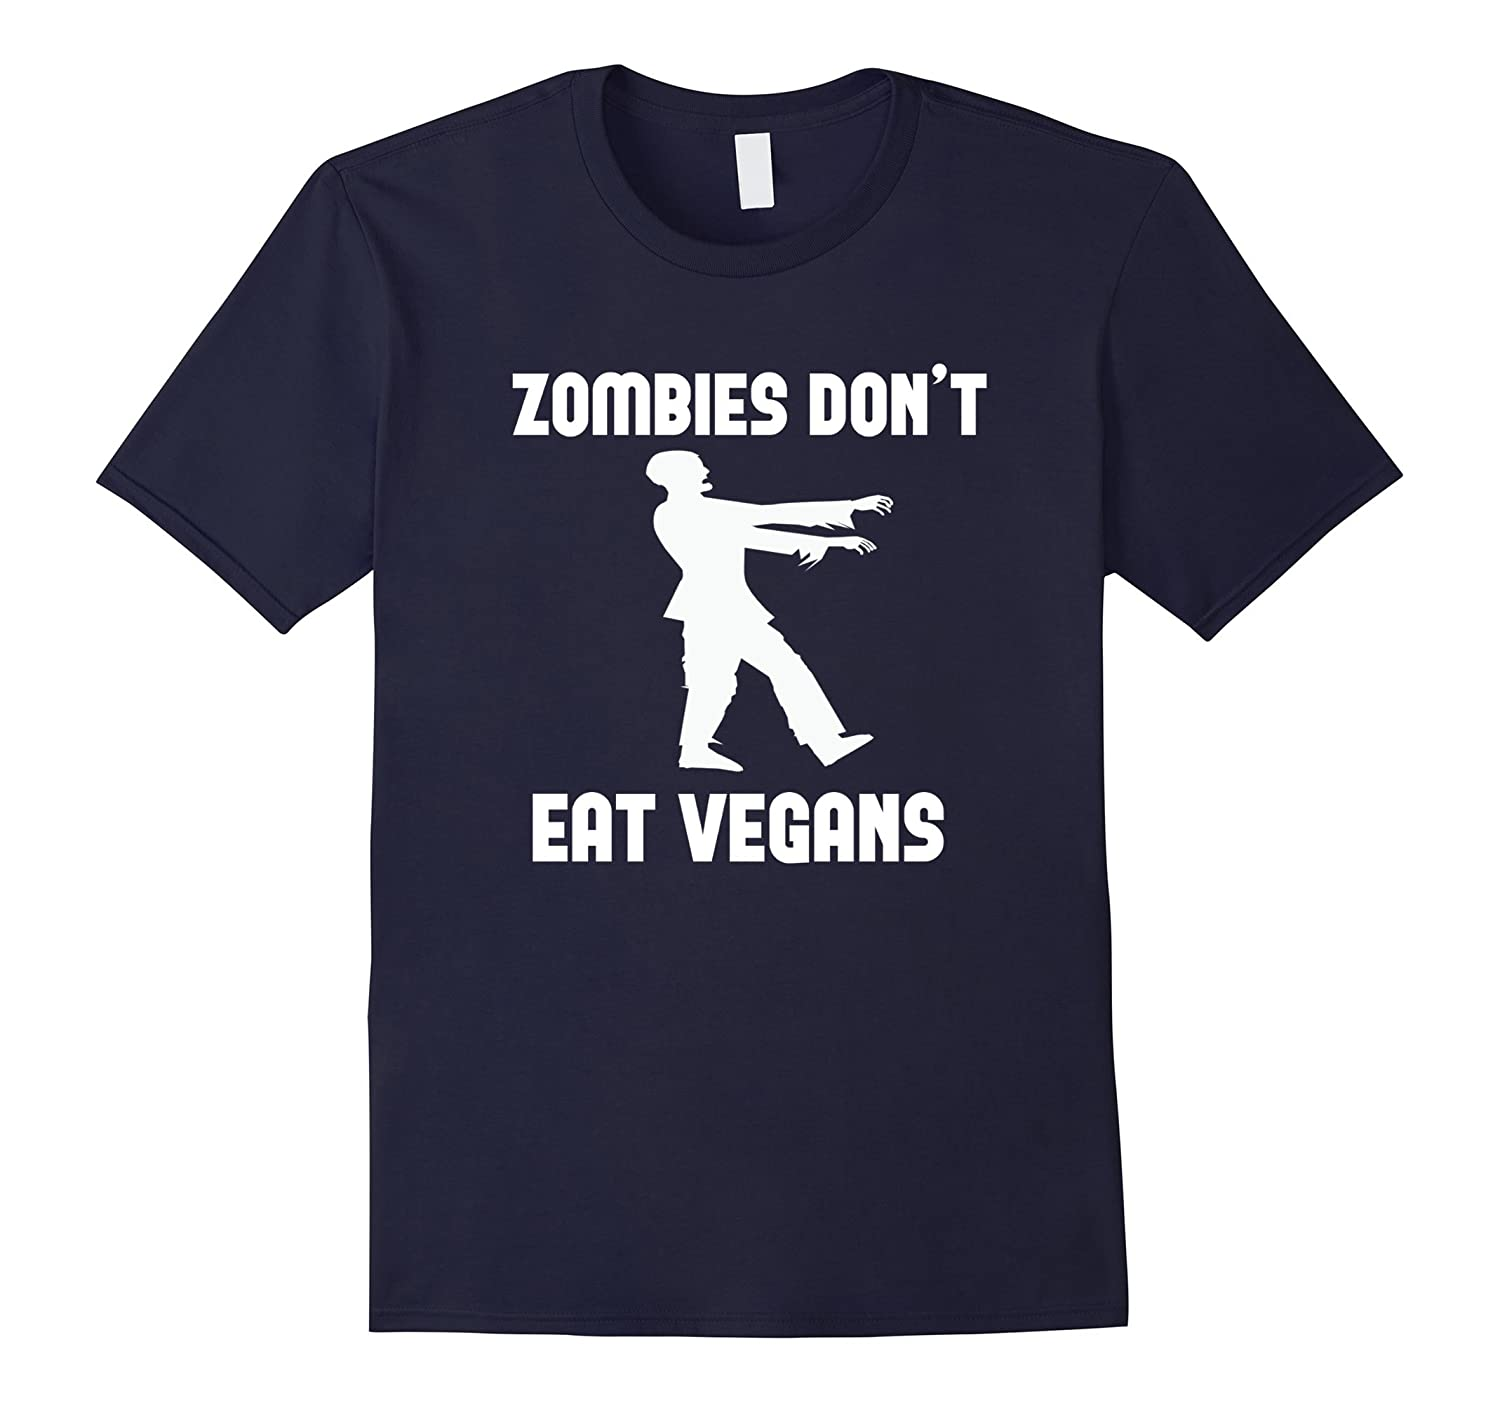 Zombies Don't Eat Vegans Funny Halloween T-shirt party gift-BN